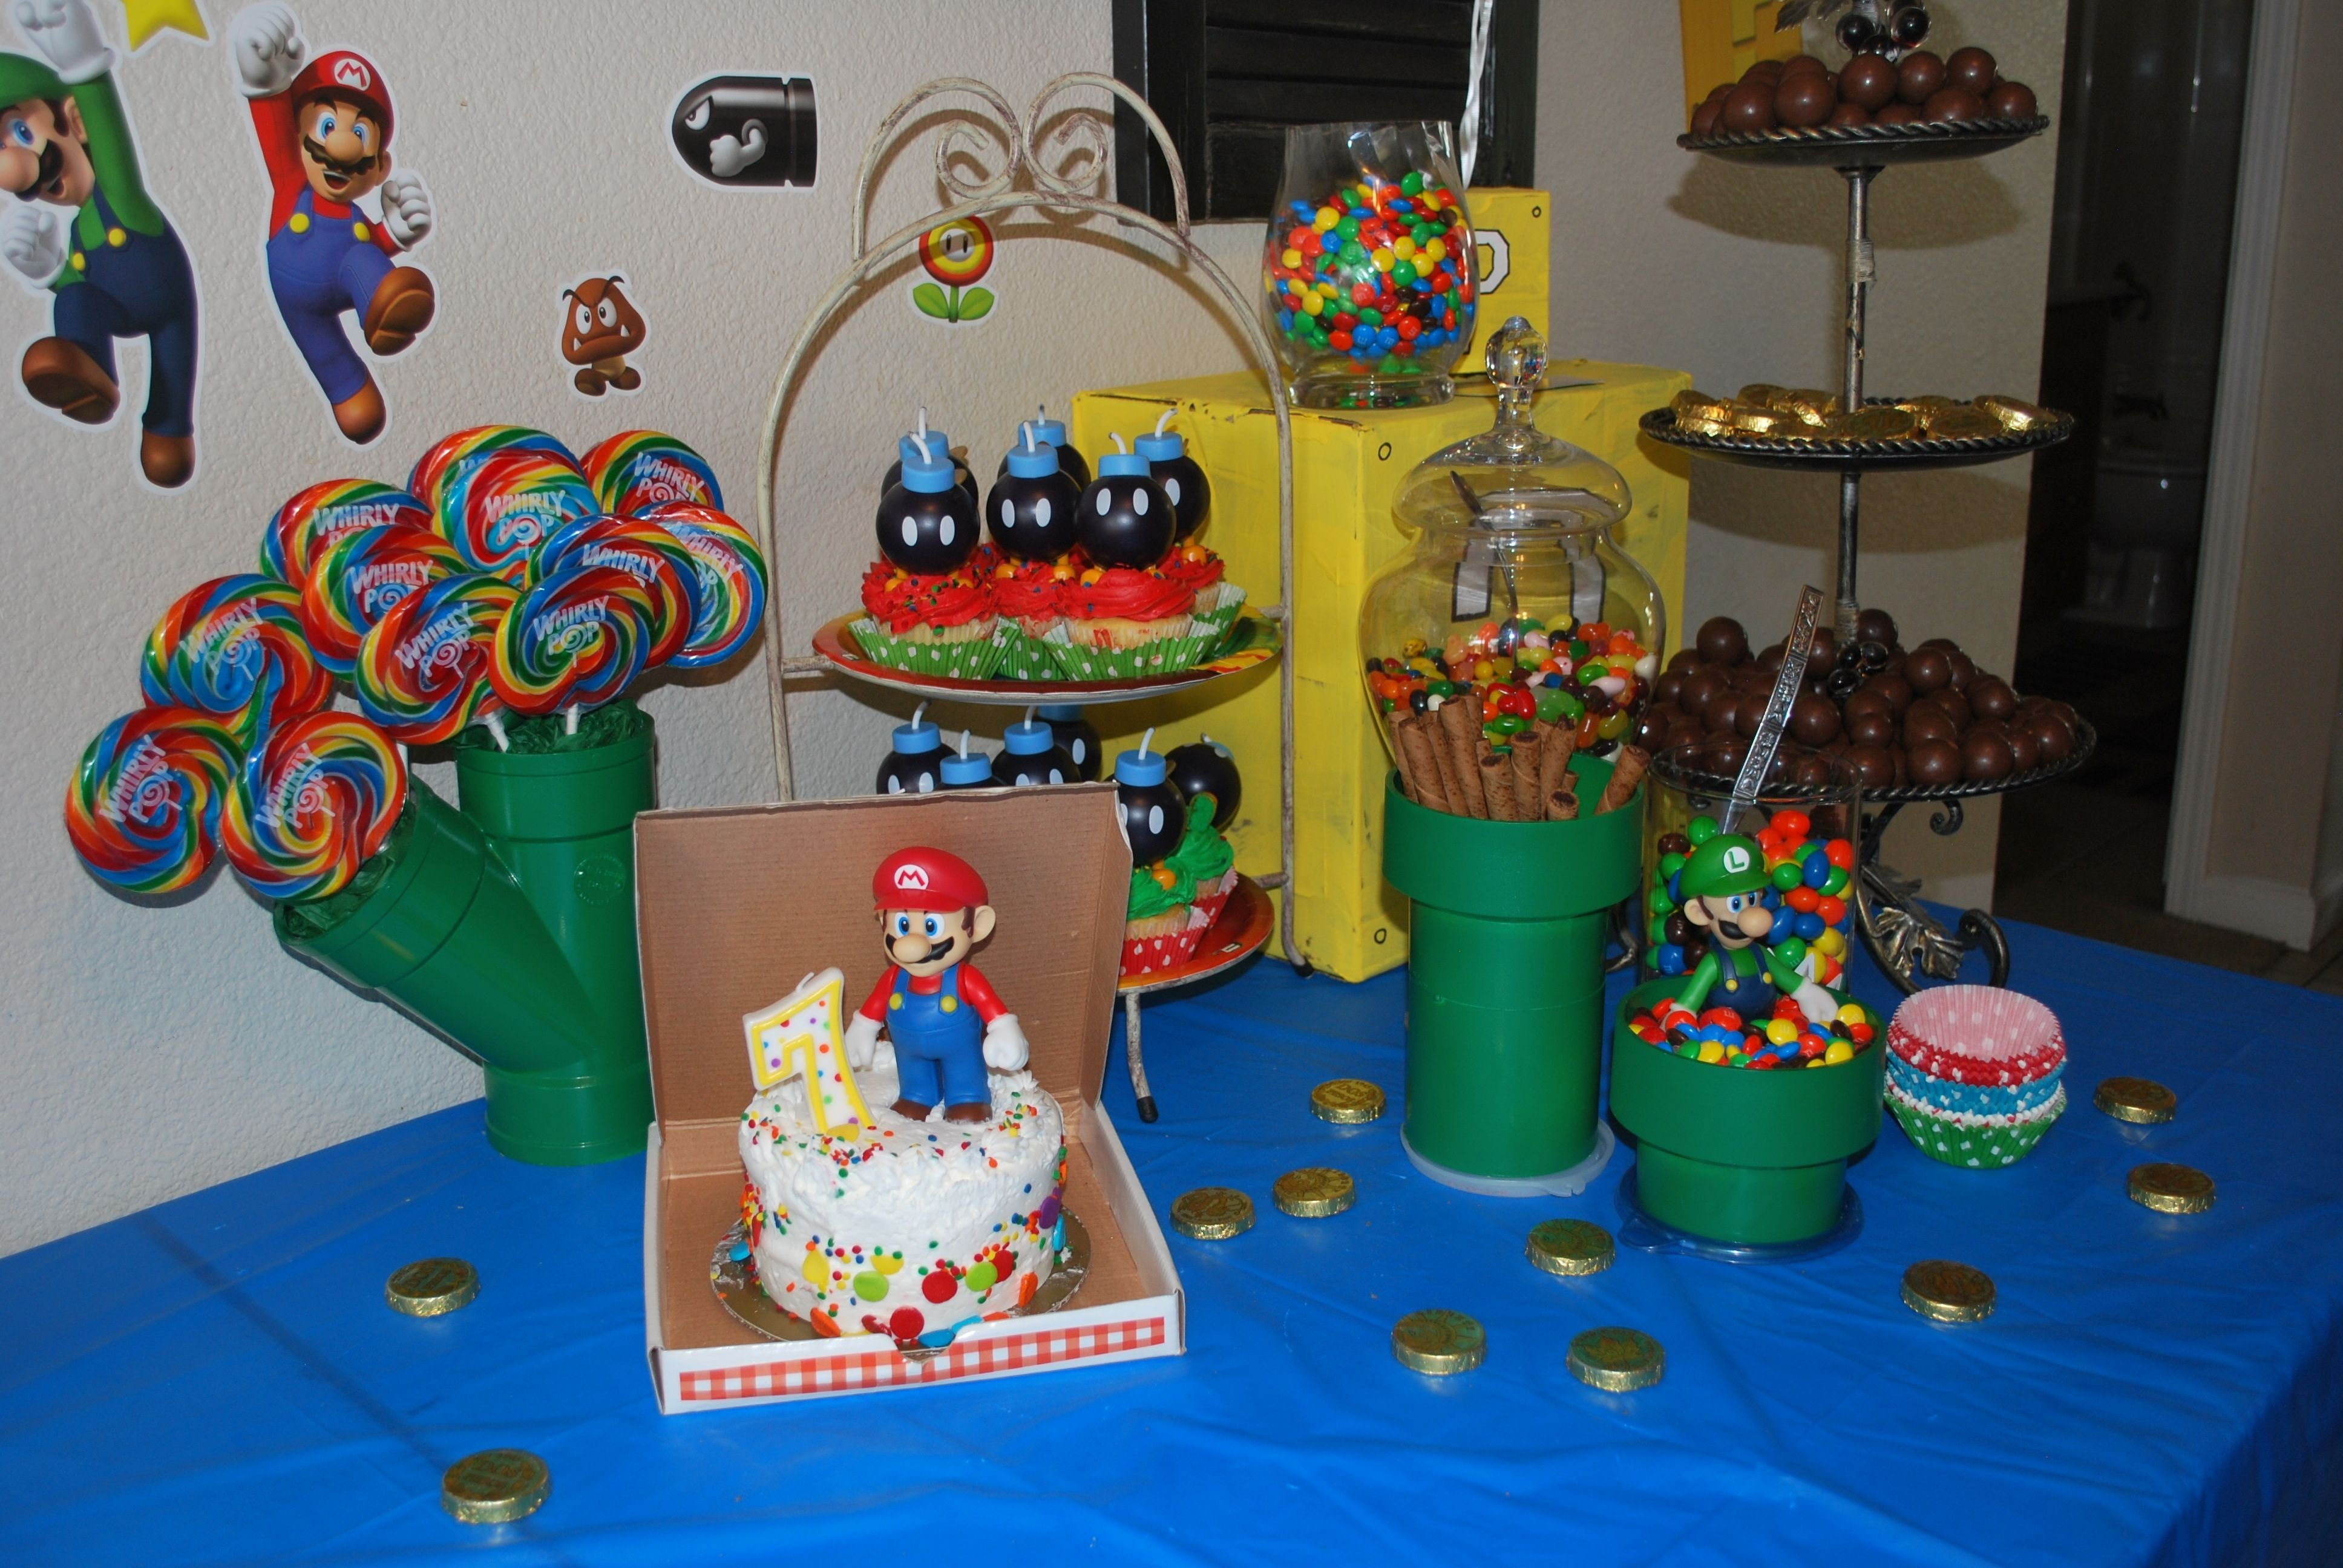 10 Spectacular Mario Brothers Birthday Party Ideas super mario brothers birthday party party ideas pinterest 2020